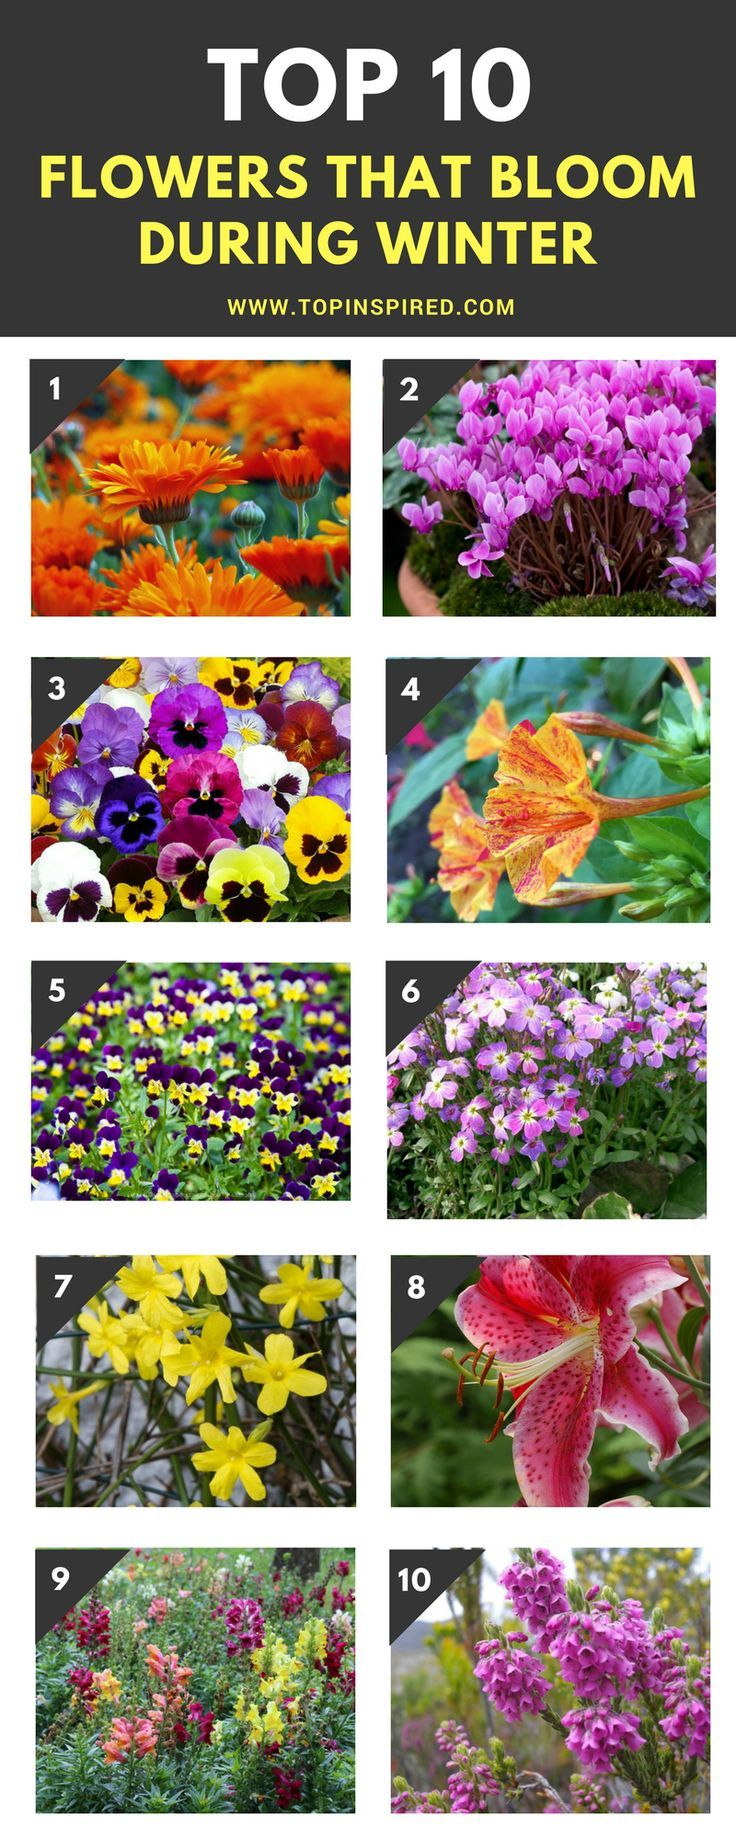 Top 10 Flowers That Bloom During Winter Winter Flowers Garden Winter Plants Winter Flowers